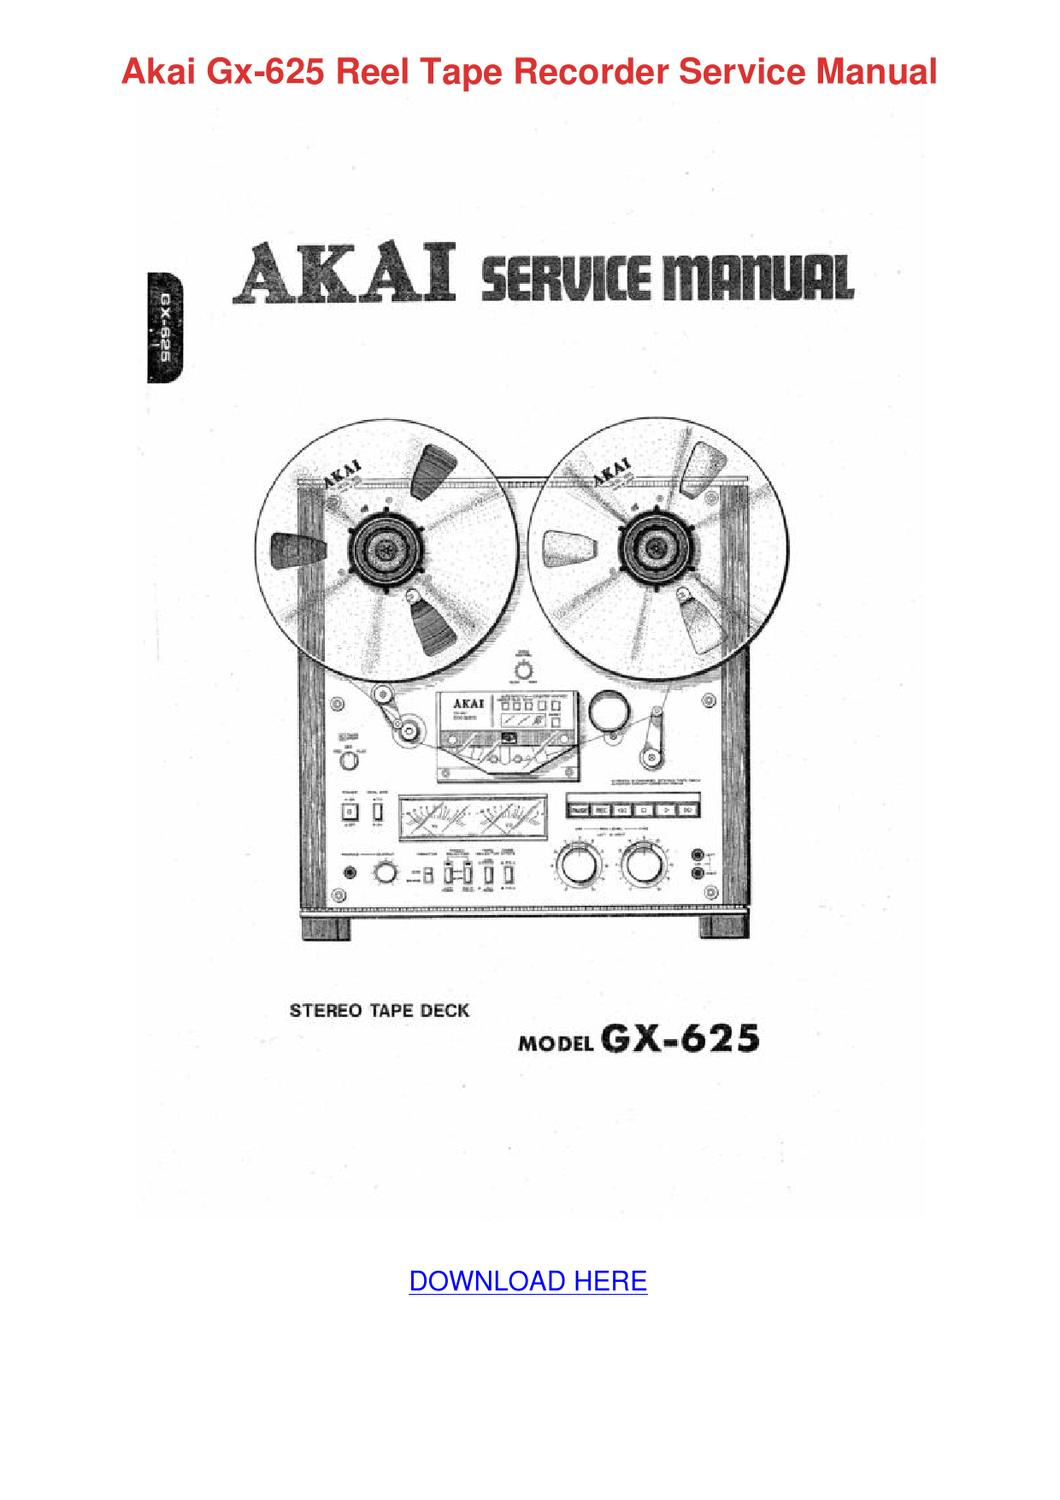 Akai Gx 625 Reel Tape Recorder Service Manual by NormaOlds